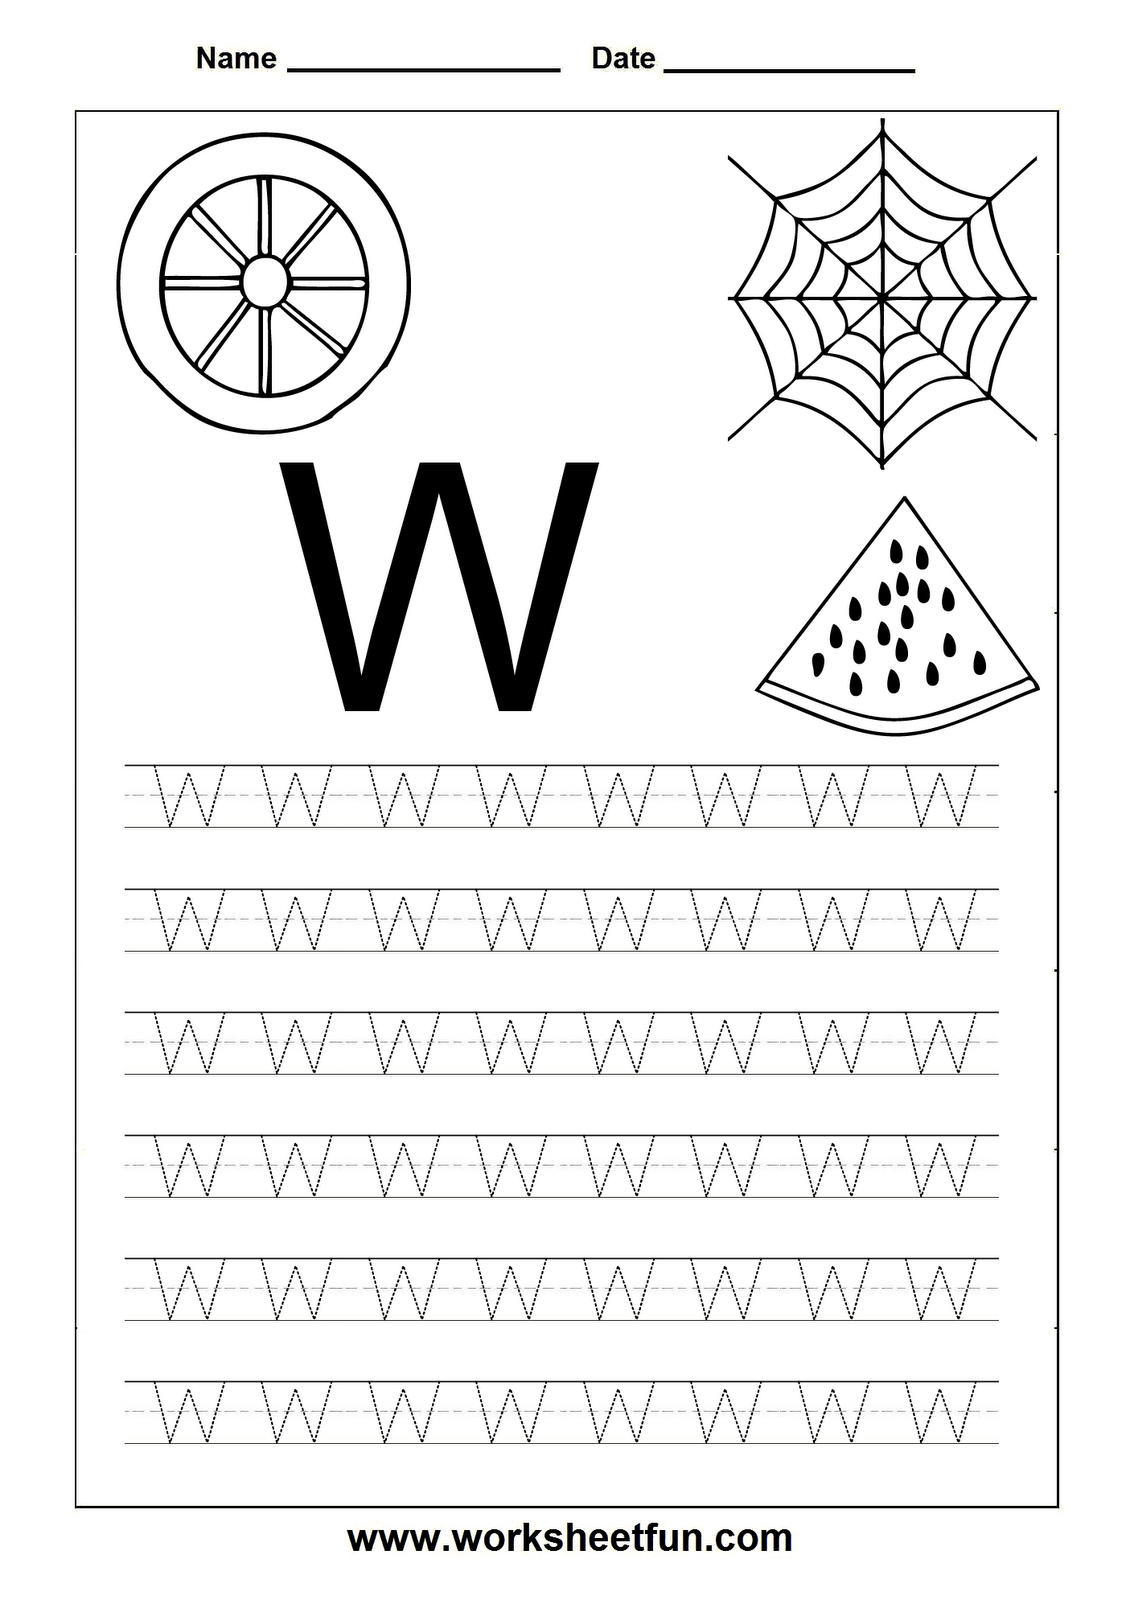 Free Printable Worksheets: Letter Tracing Worksheets For regarding Letter W Tracing Sheet